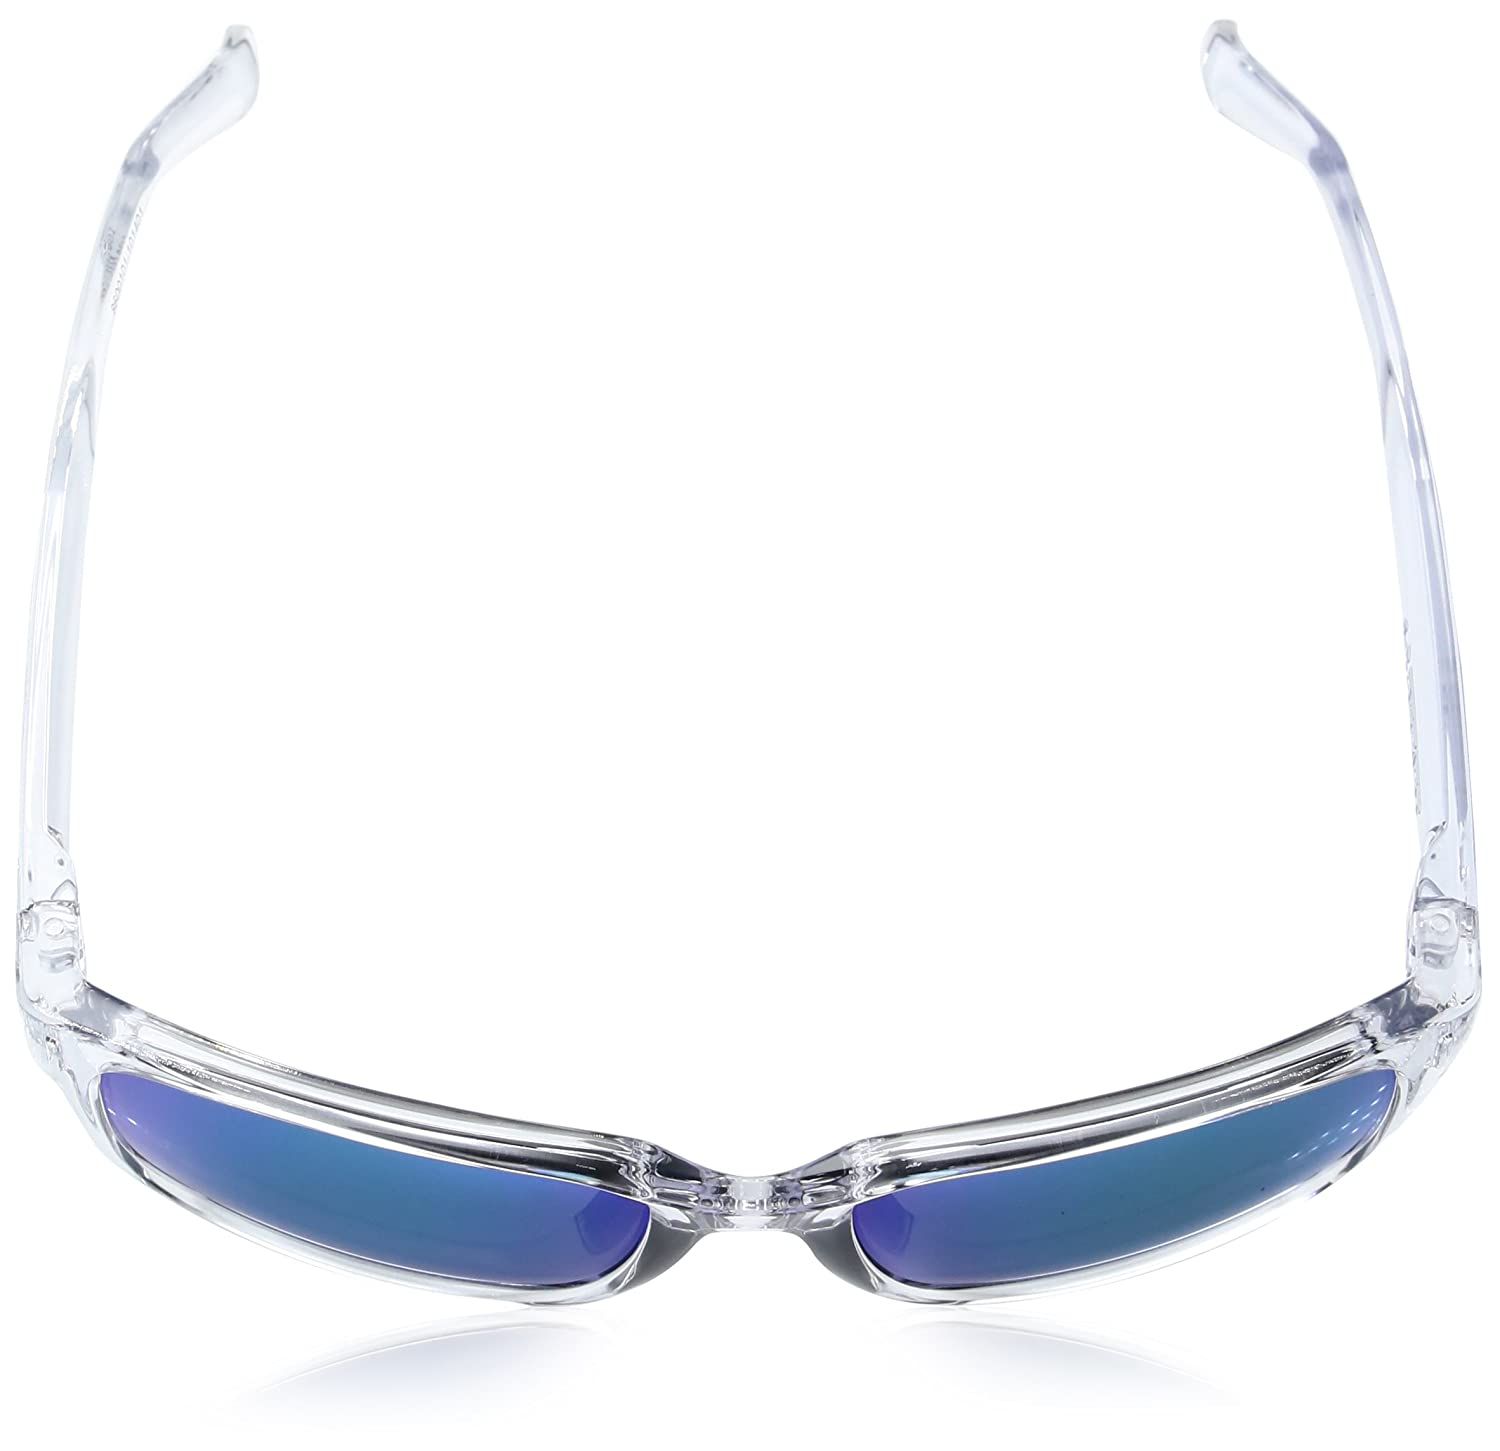 Under Armour Eyewear Assist Sunglasses